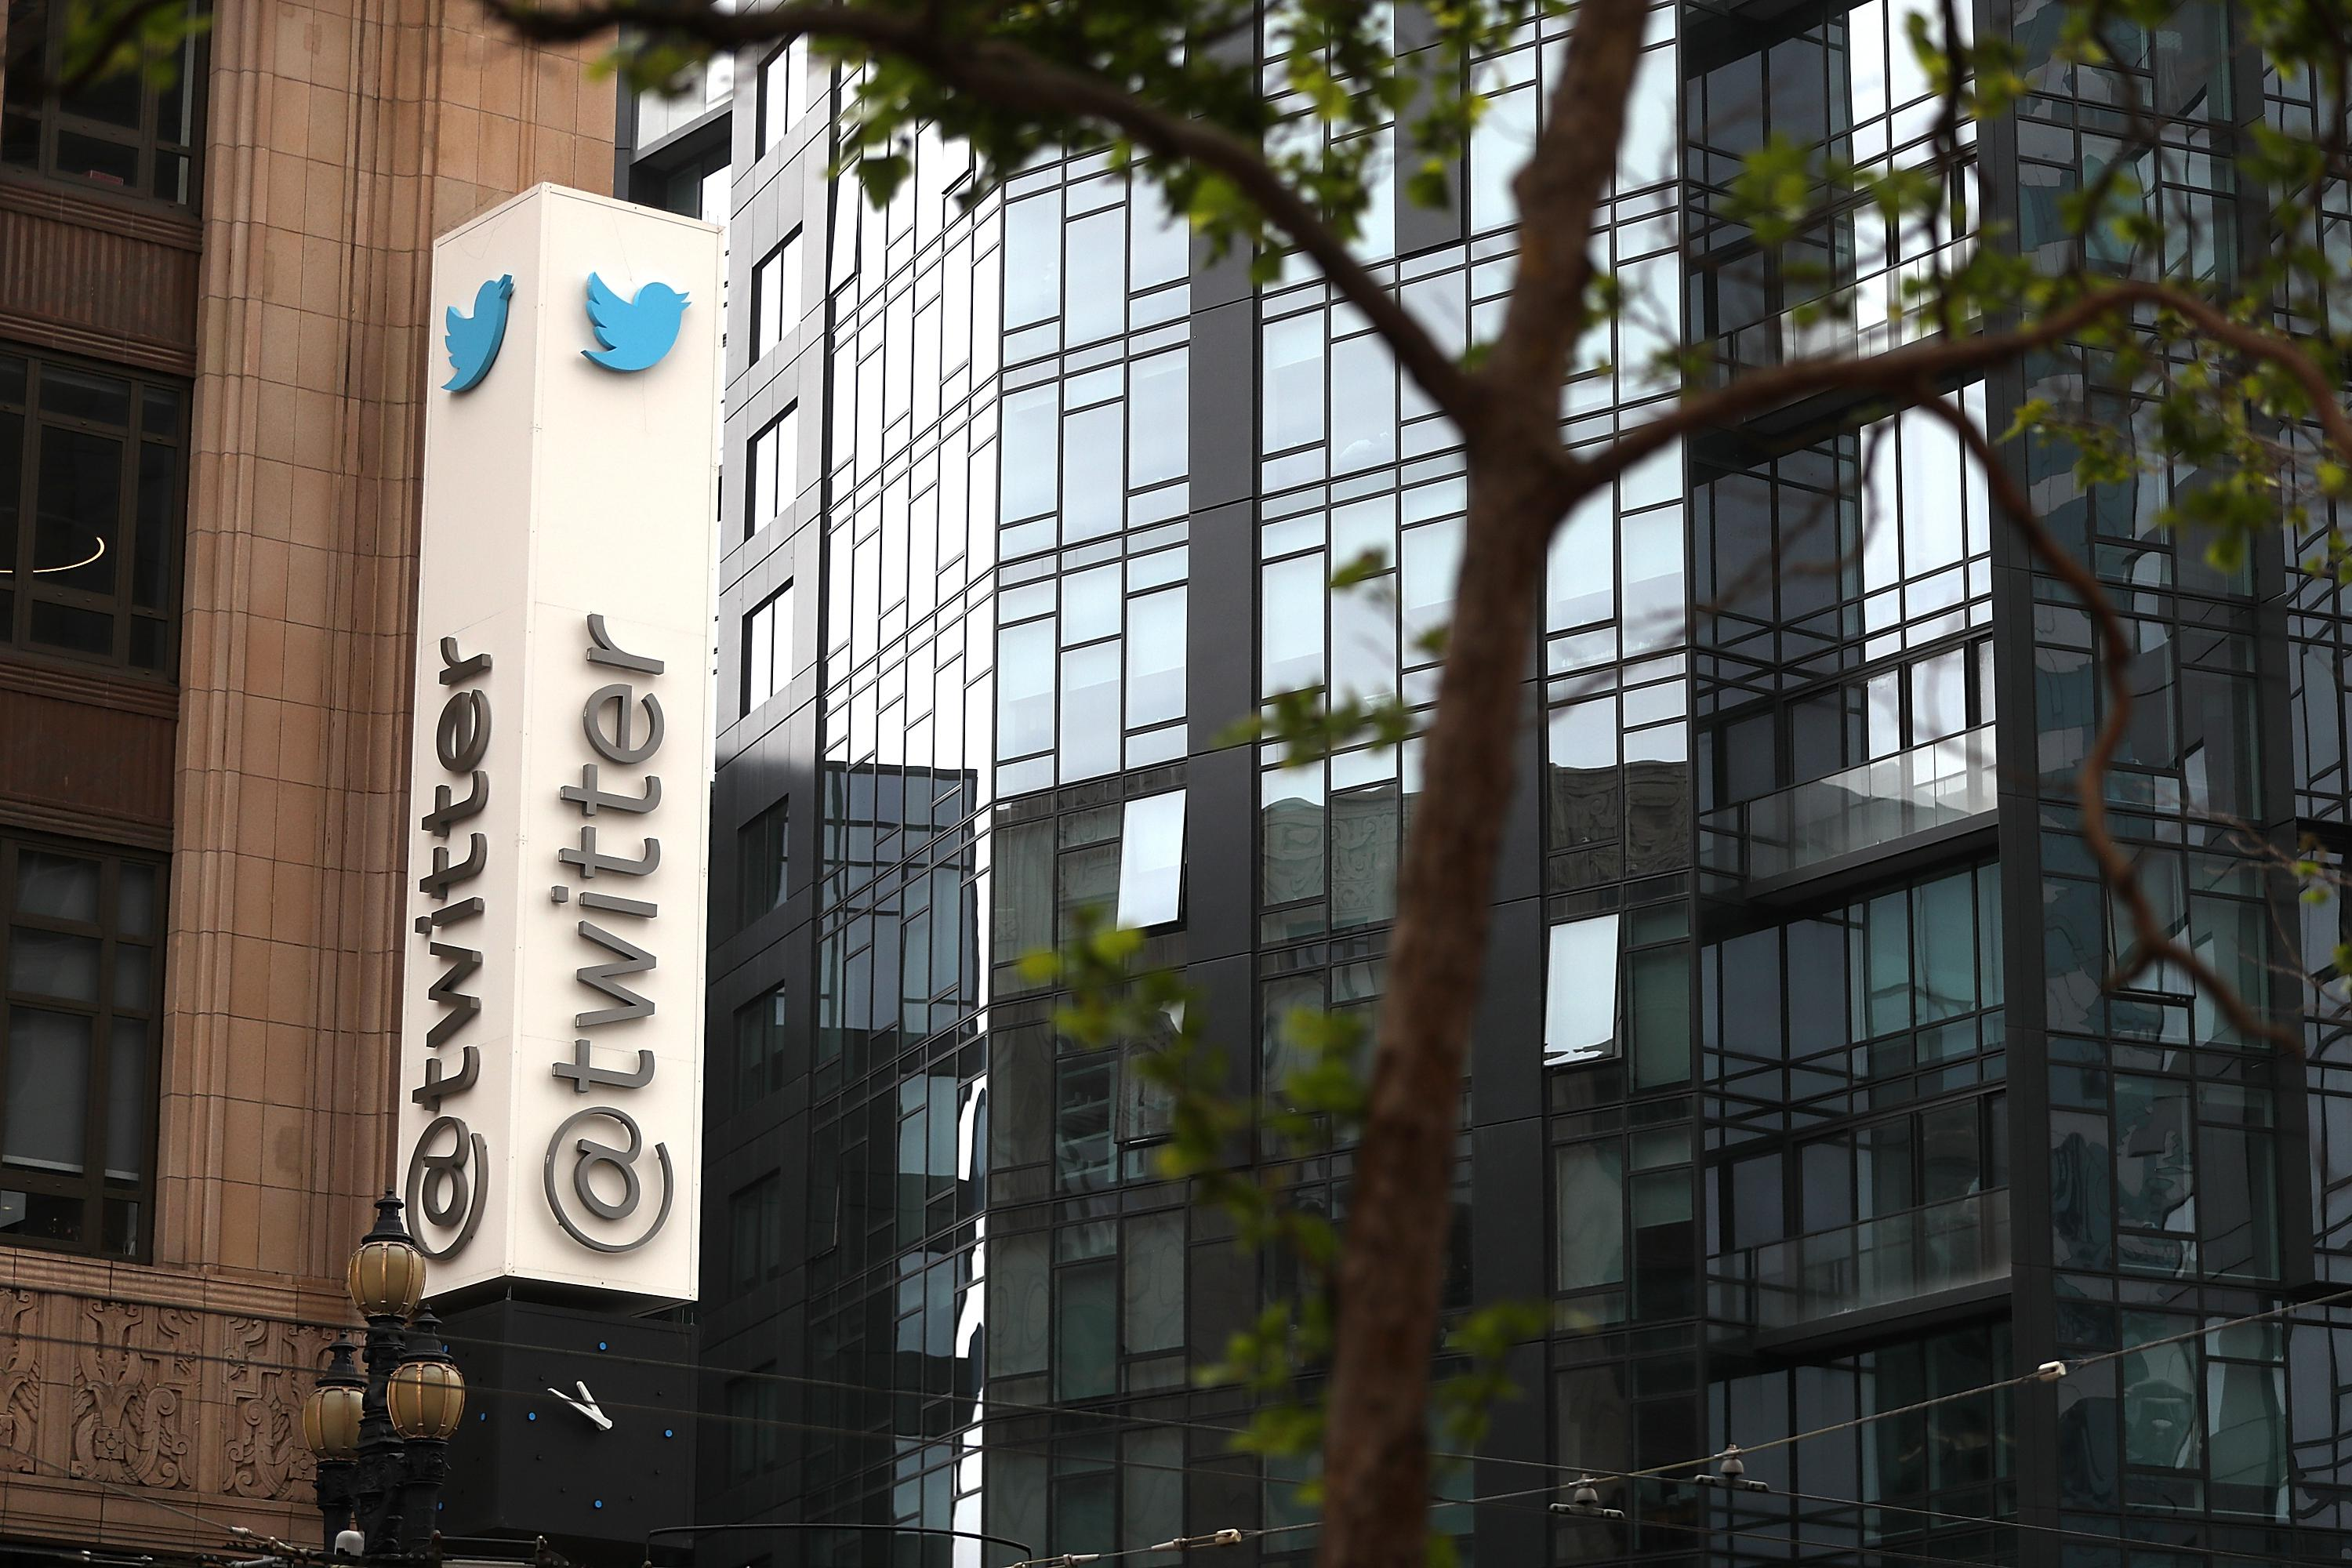 SAN FRANCISCO, CA - APRIL 26:  A sign is posted on the exterior of Twitter headquarters on April 26, 2017 in San Francisco, California. Twitter reported  better-than-expected first quarter earnings with revenue of $548 million, compared to analyst estimates of roughly $512 million. Monthly active users to jumped to 328 million, 7 million more than expected.  (Photo by Justin Sullivan/Getty Images)